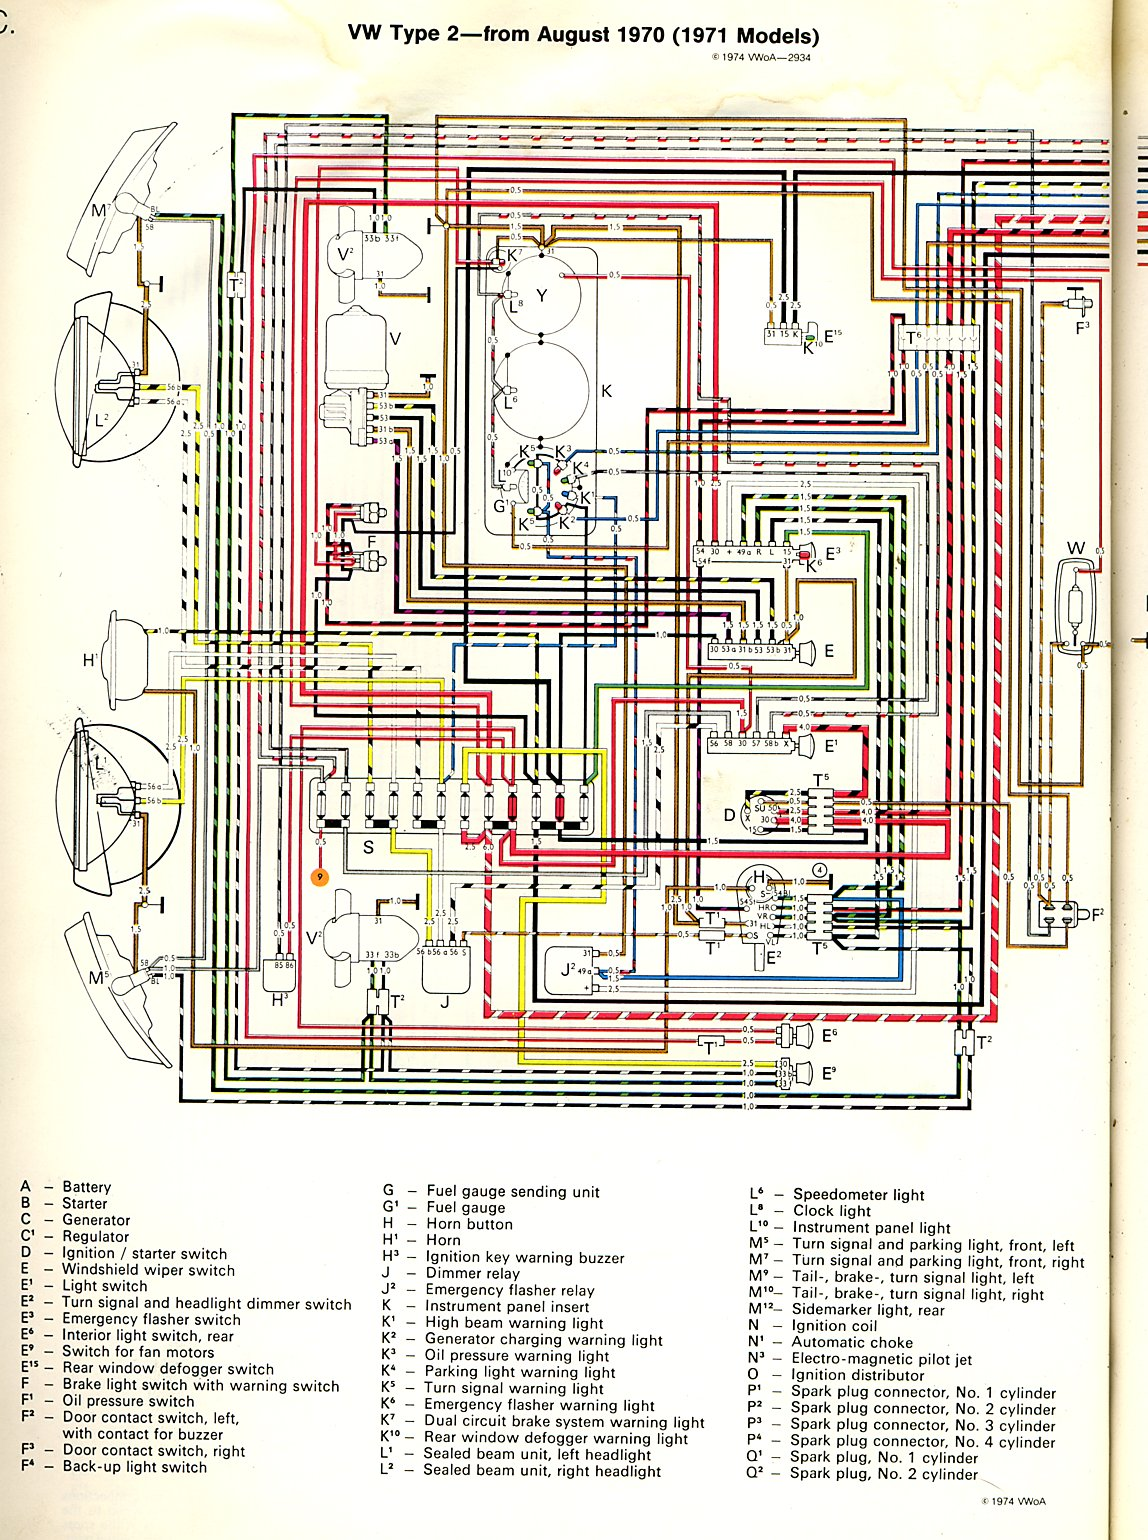 baybus_71a thesamba com type 2 wiring diagrams 1973 vw wiring diagram at n-0.co